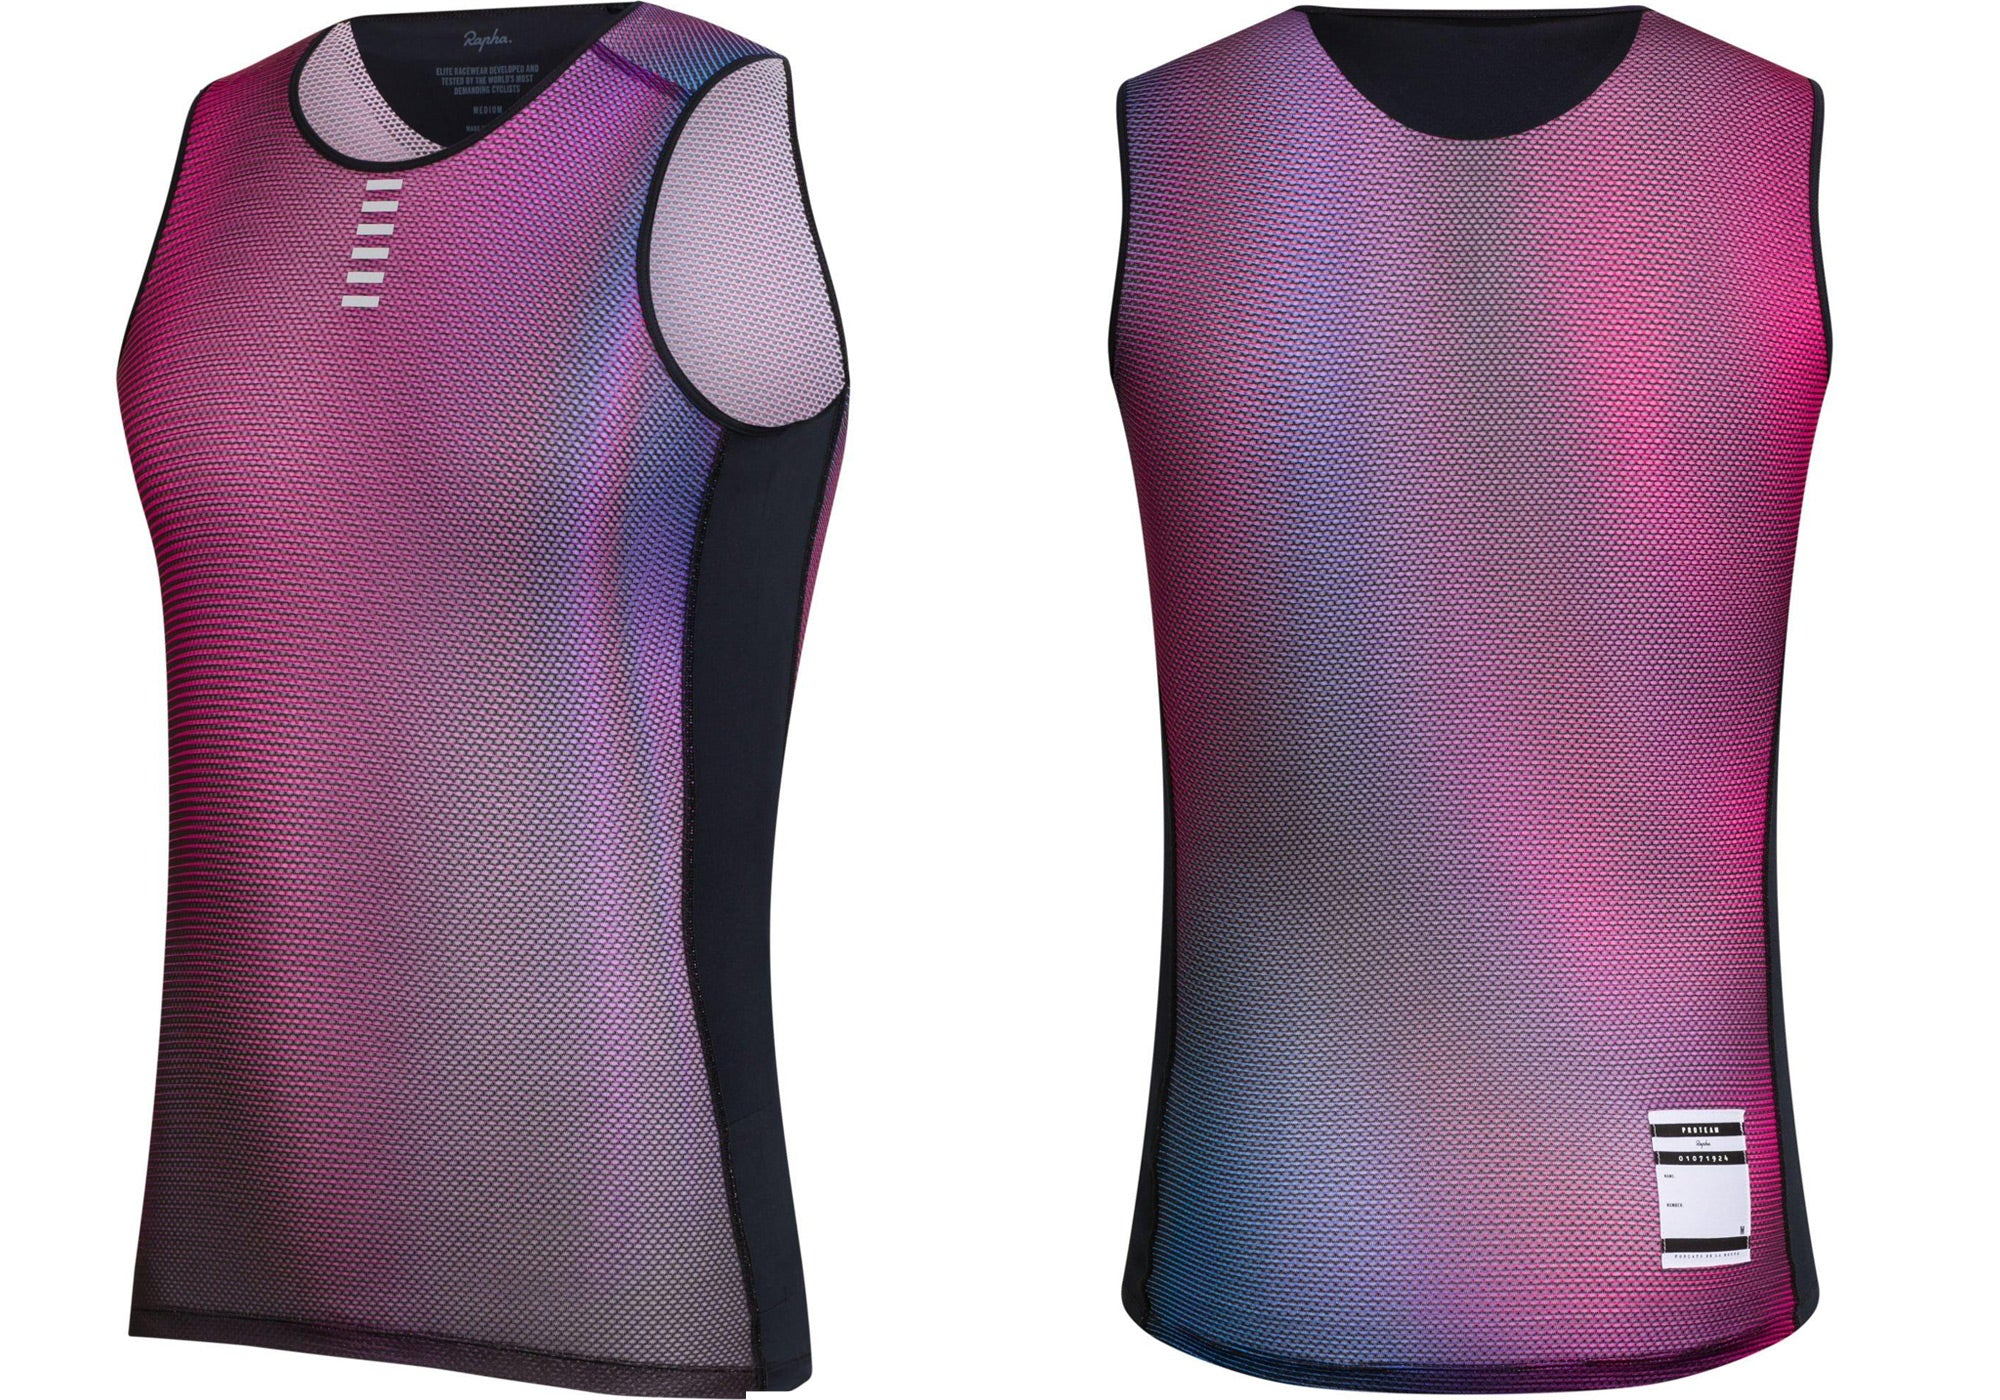 Rapha Mens Pro Team Short Sleeve Base Layer - Purple Print Flight Collection buy now at Woolys Wheels Sydney